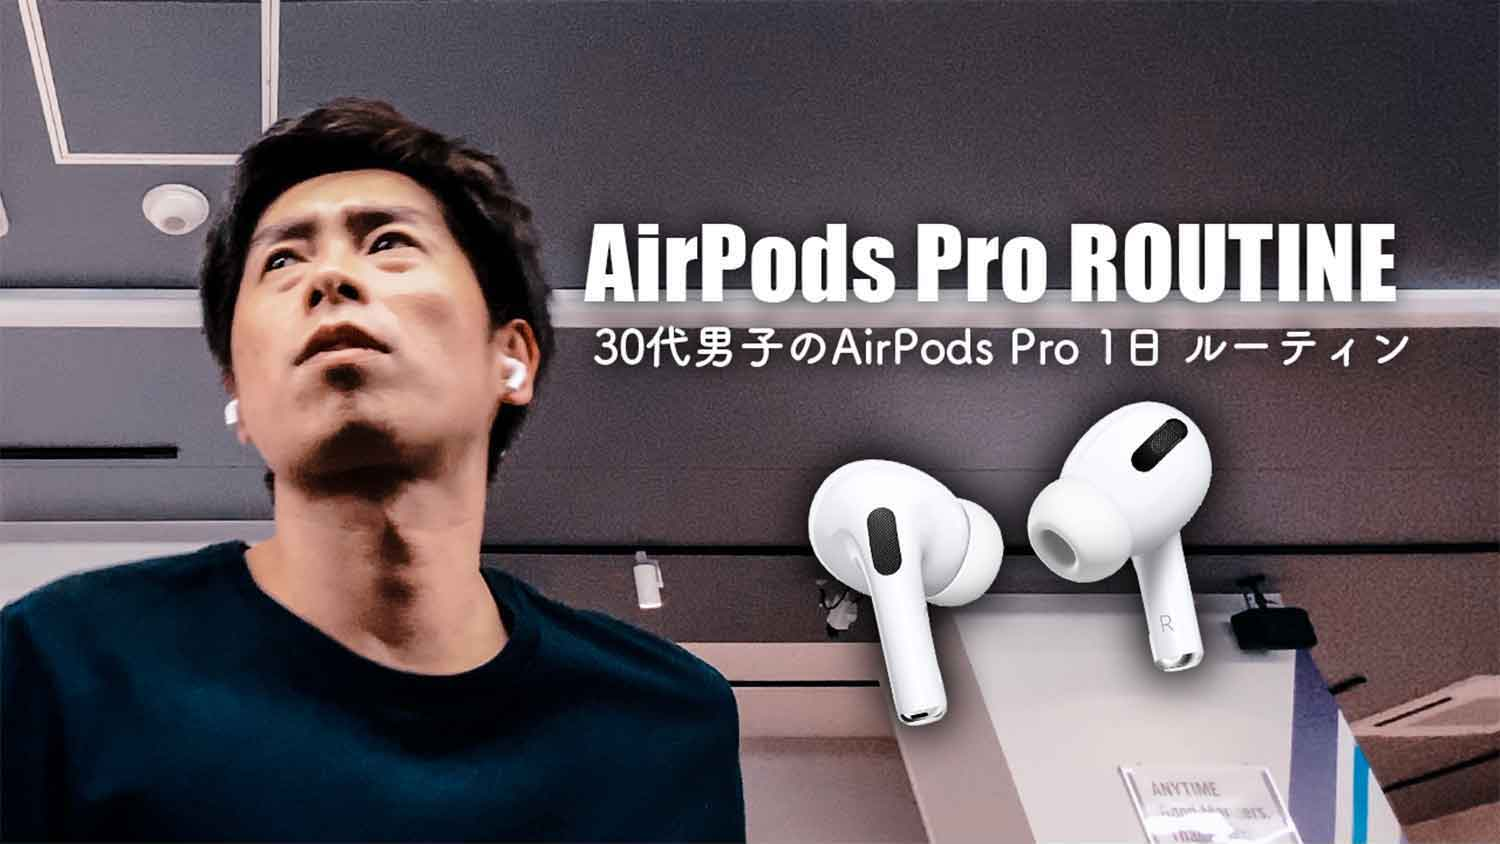 AirPods-Pro-1-day-routine